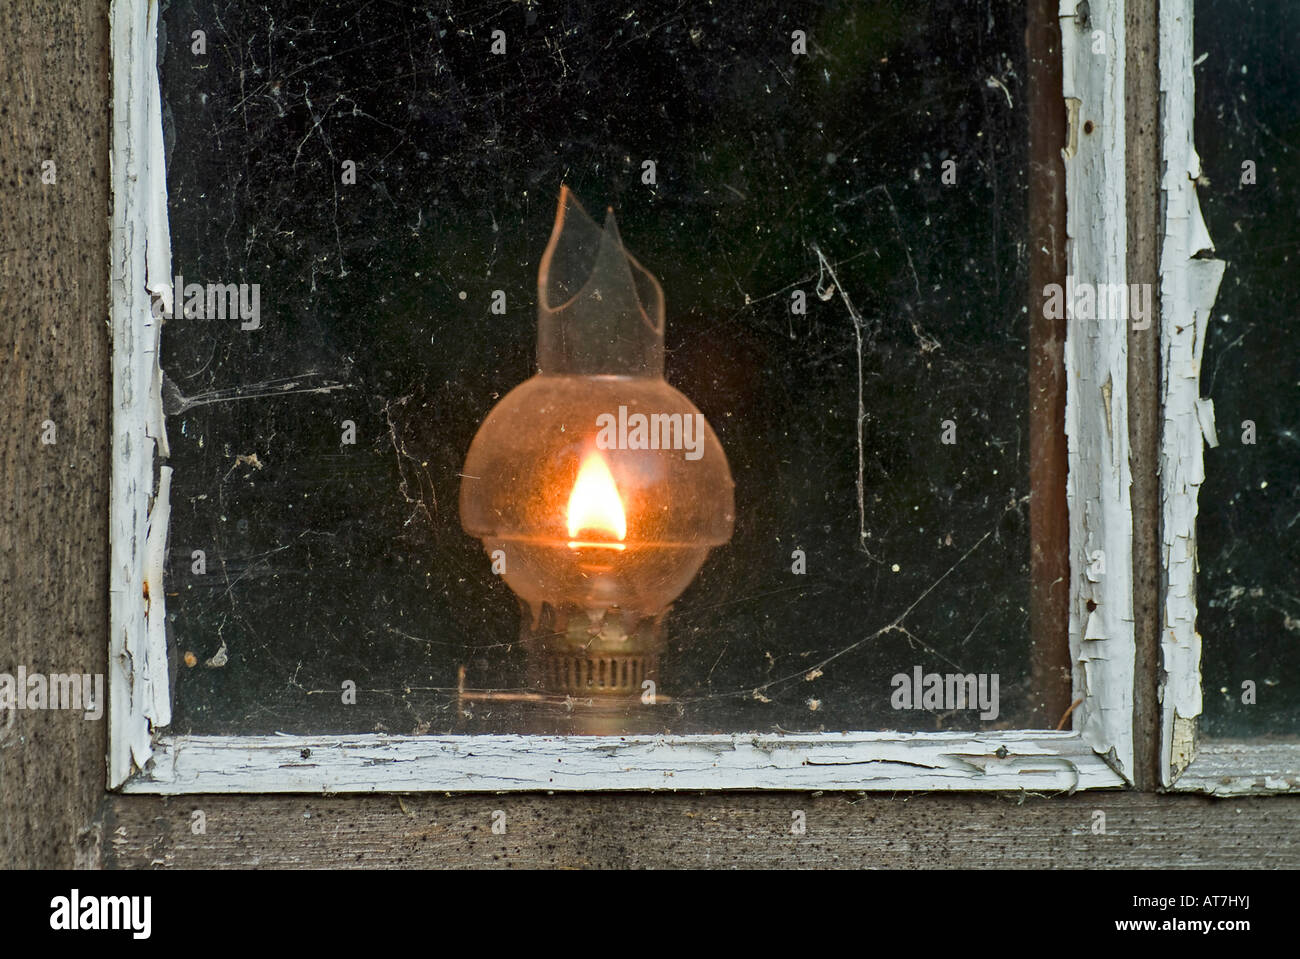 old oil lamp with broken glass burning at window of a timber wooden house - Stock Image